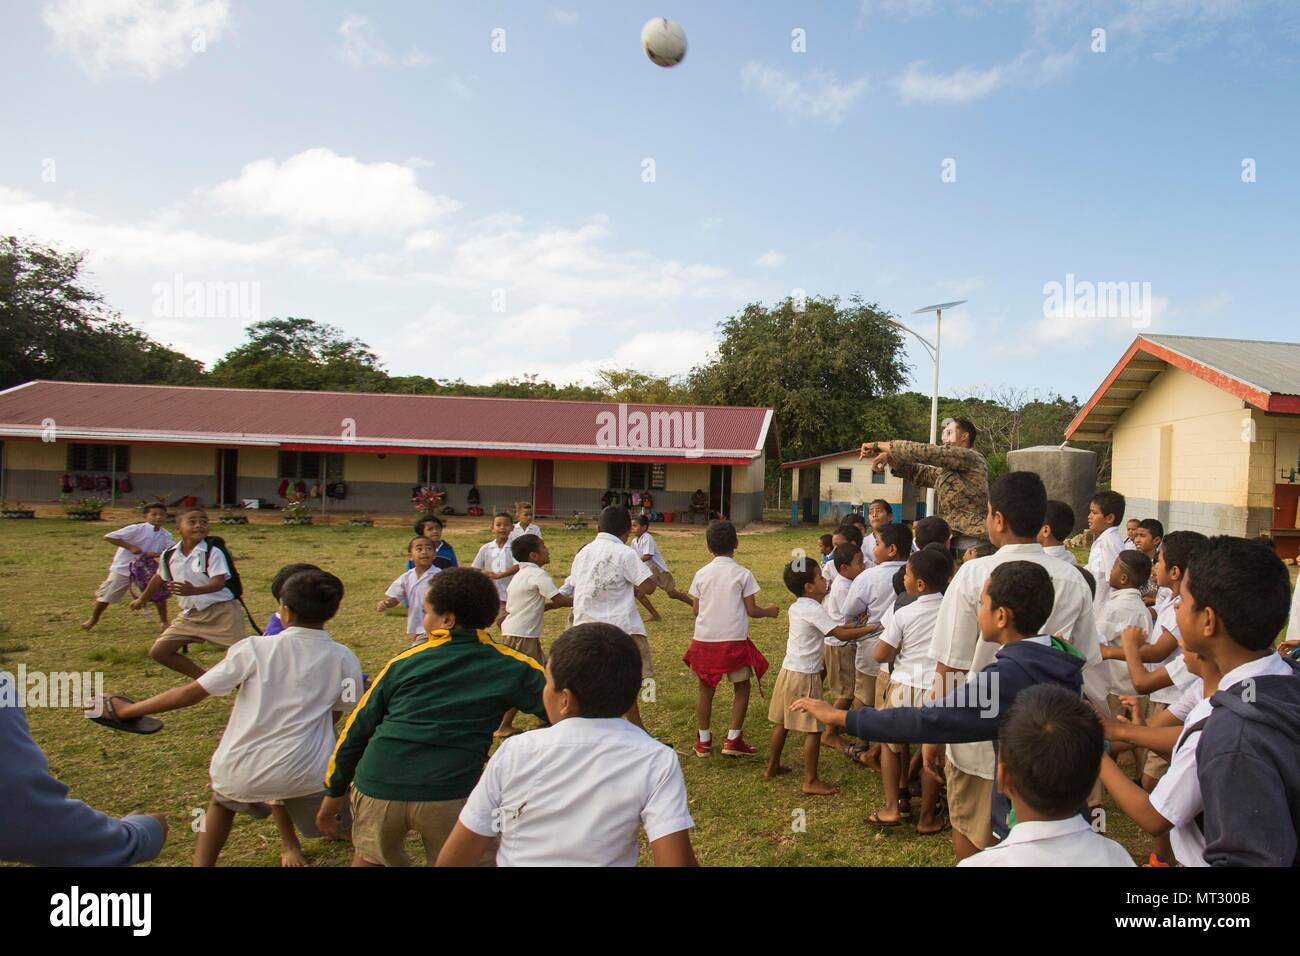 TONGATAPU ISLAND, Tonga — Sgt. Joseph Pritchard throws a ball for children while volunteering at a local elementary school July 20 on Tongatapu Island, Tonga. The volunteers spent part of the day cleaning up the premises, and then participated in a variety of activities with the children during recess. Pritchard is a mortarman with 3rd Battalion, 4th Marine Regiment, currently deployed to Koa Moana 17, and a Port St. Lucy, Florida, native. (U.S. Marine Corps Photo by Sgt. Douglas D. Simons) - Stock Image